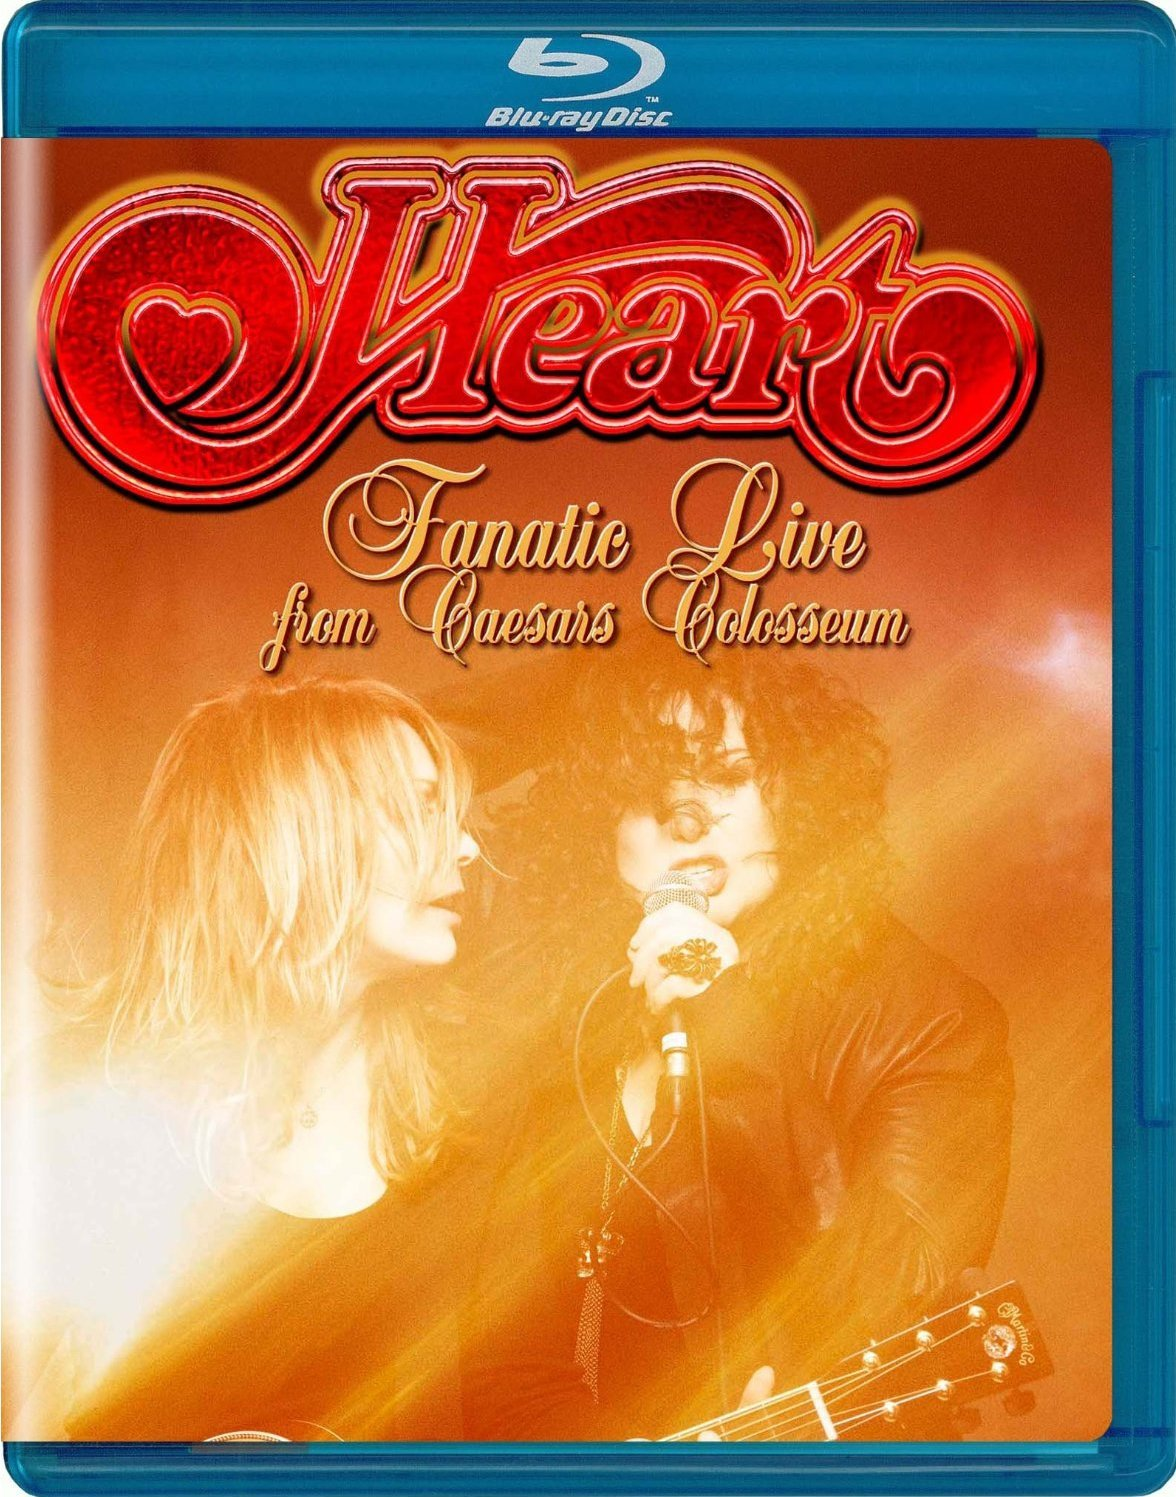 Heart Fanatic Live From Caesars Colosseum (Blu-ray)